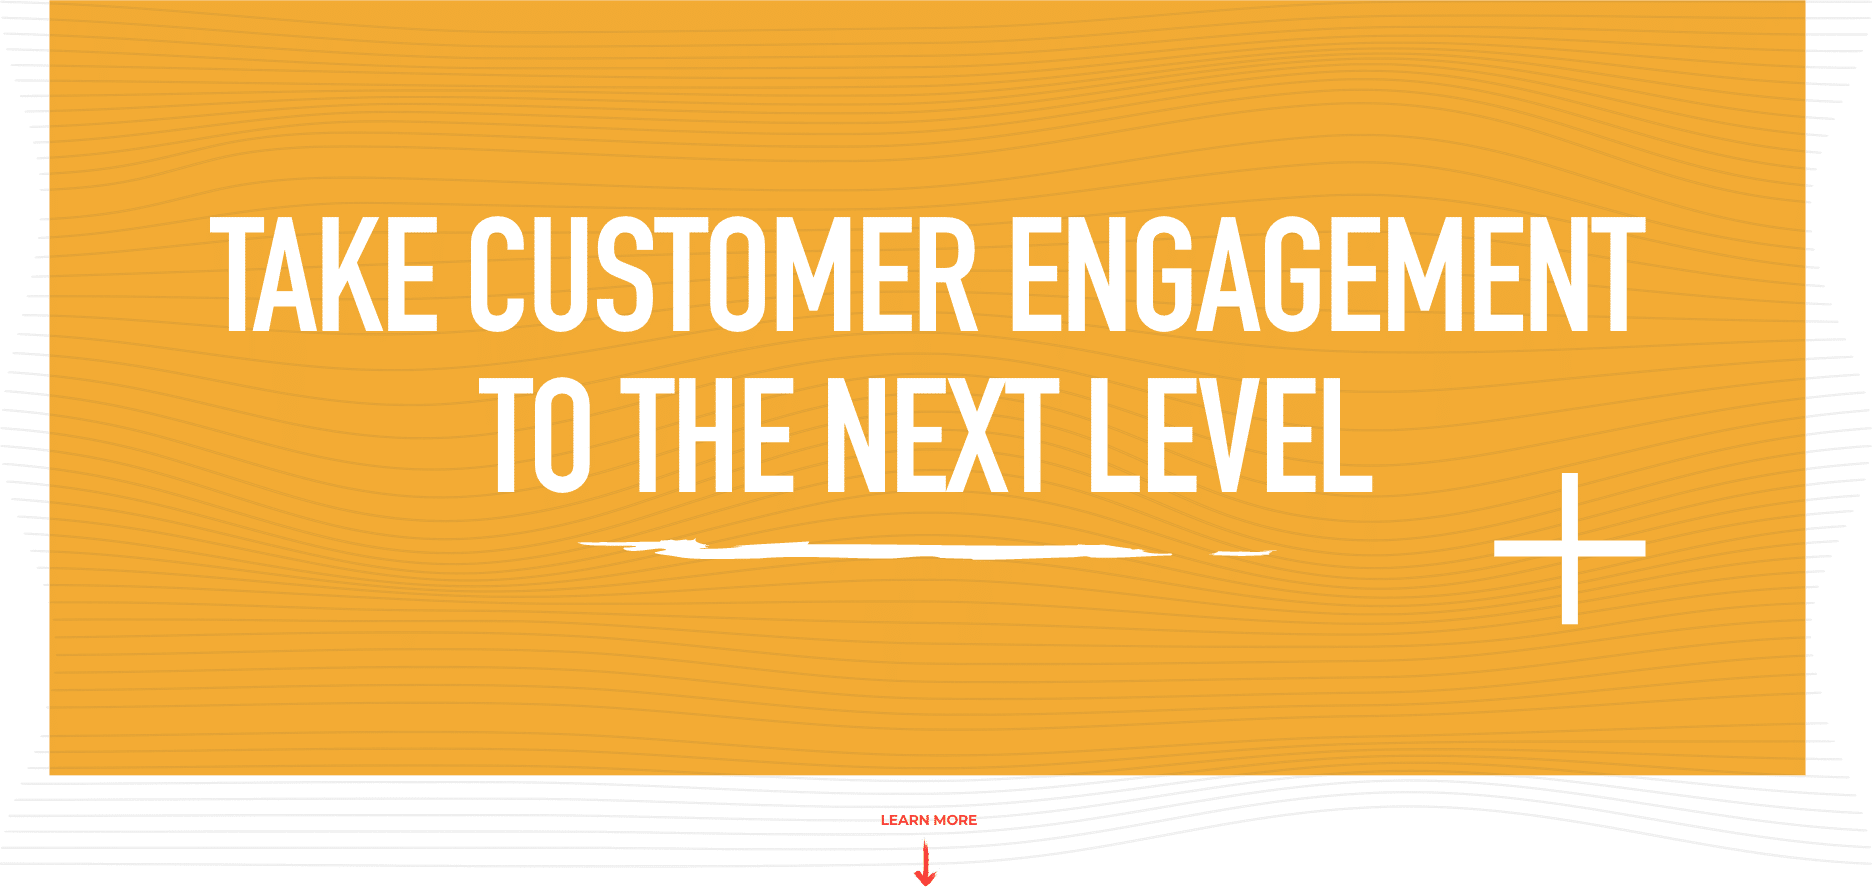 Take Customer Engagement To The Next Level